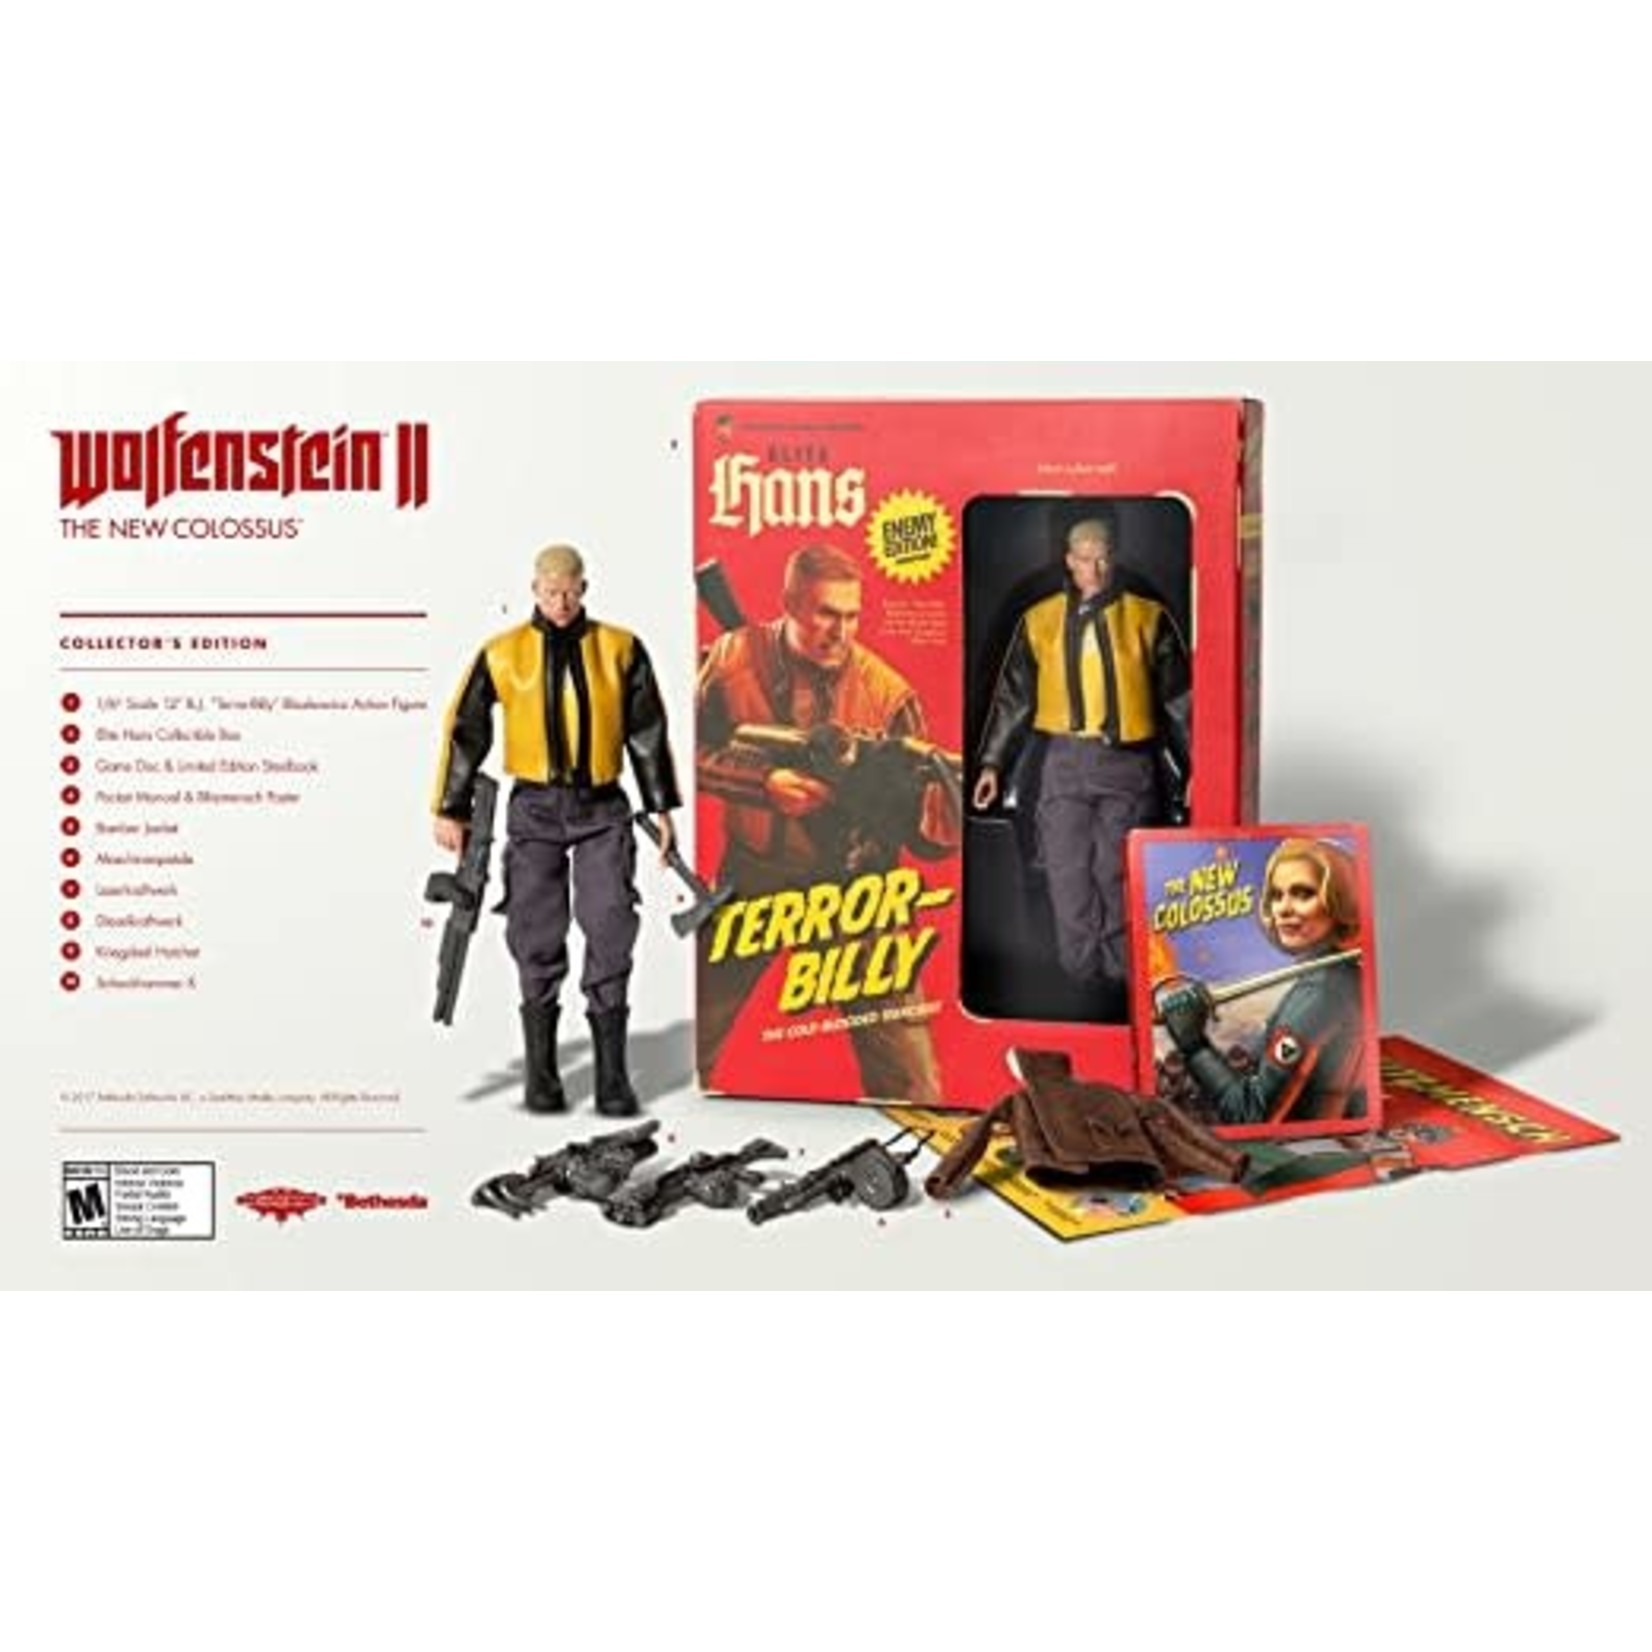 PS4-Wolfenstein 2 The New Colossus Collector's Edition